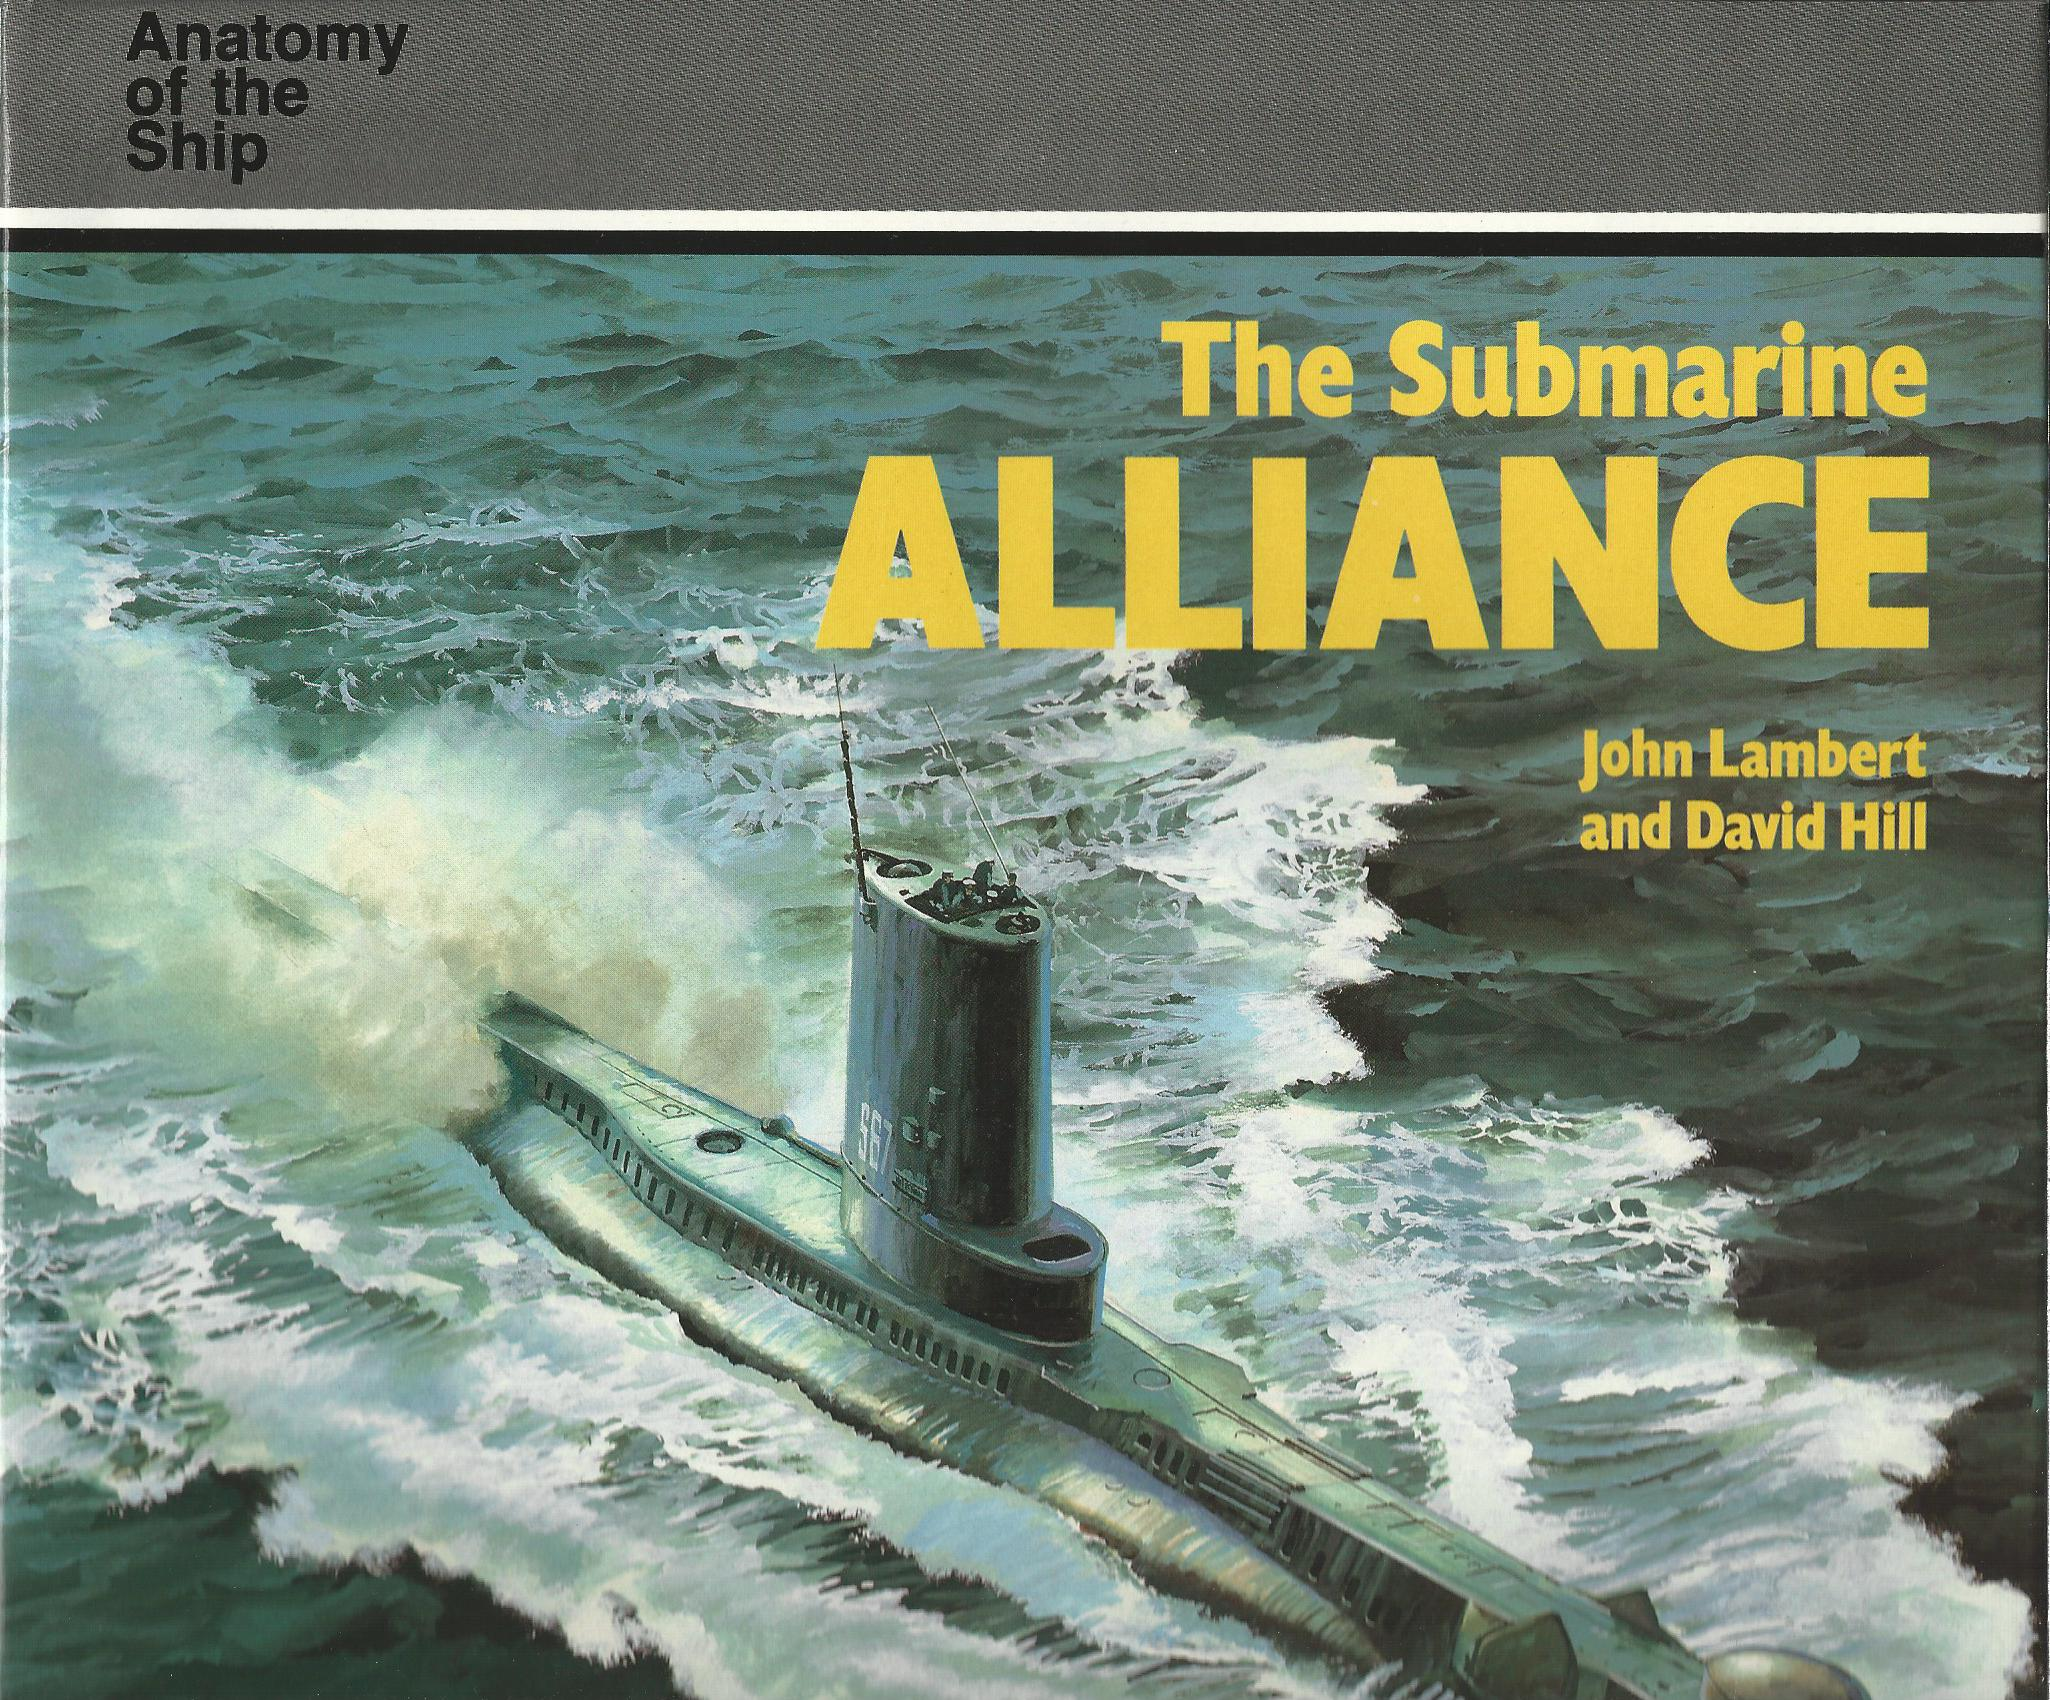 The Submarine Alliance (Anatomy of the Ship Series)